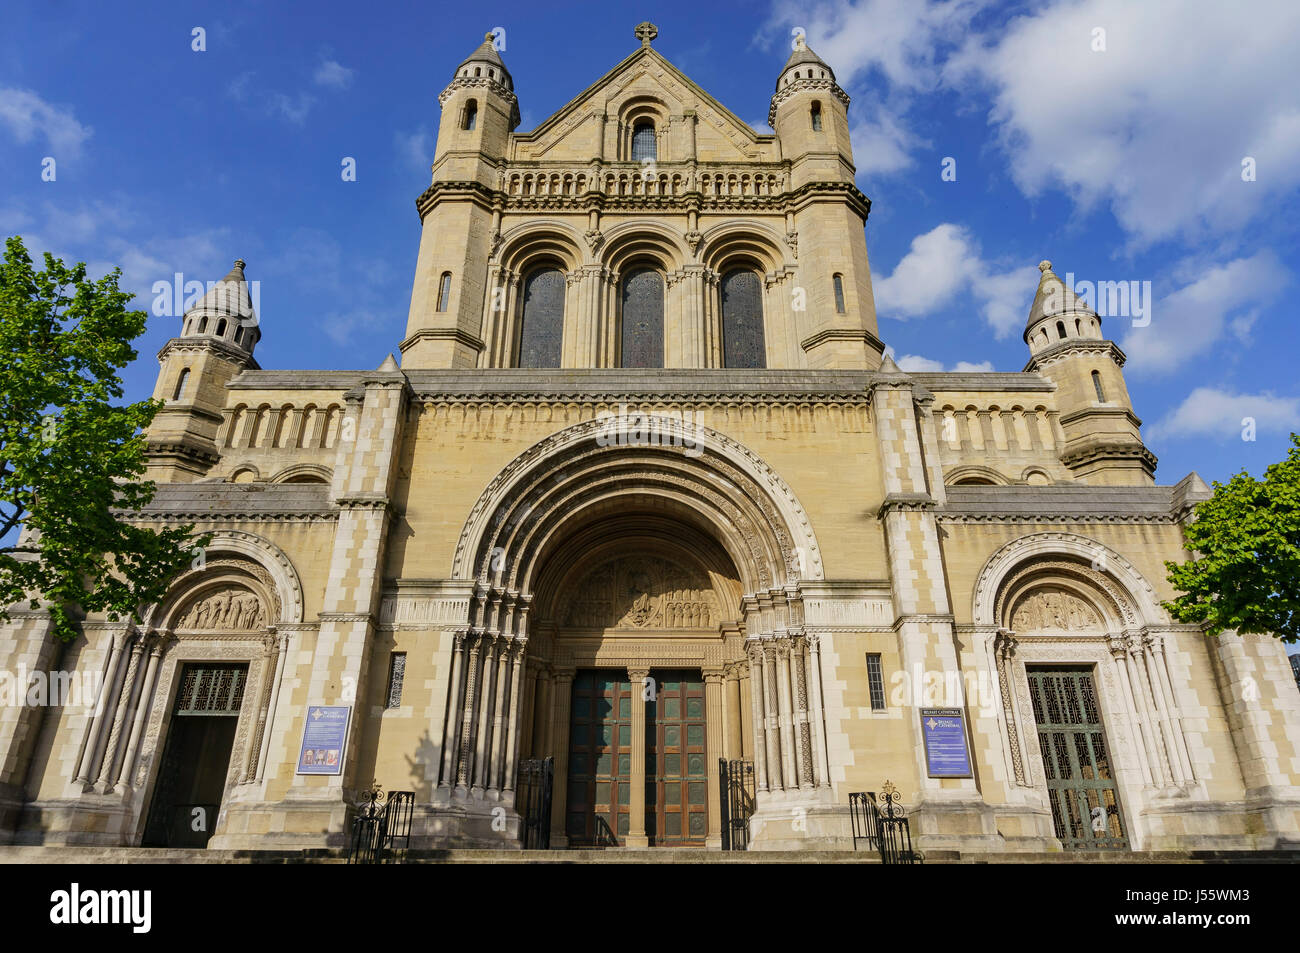 Exterior view of the historical St Anne's Cathedral, Belfast - Stock Image